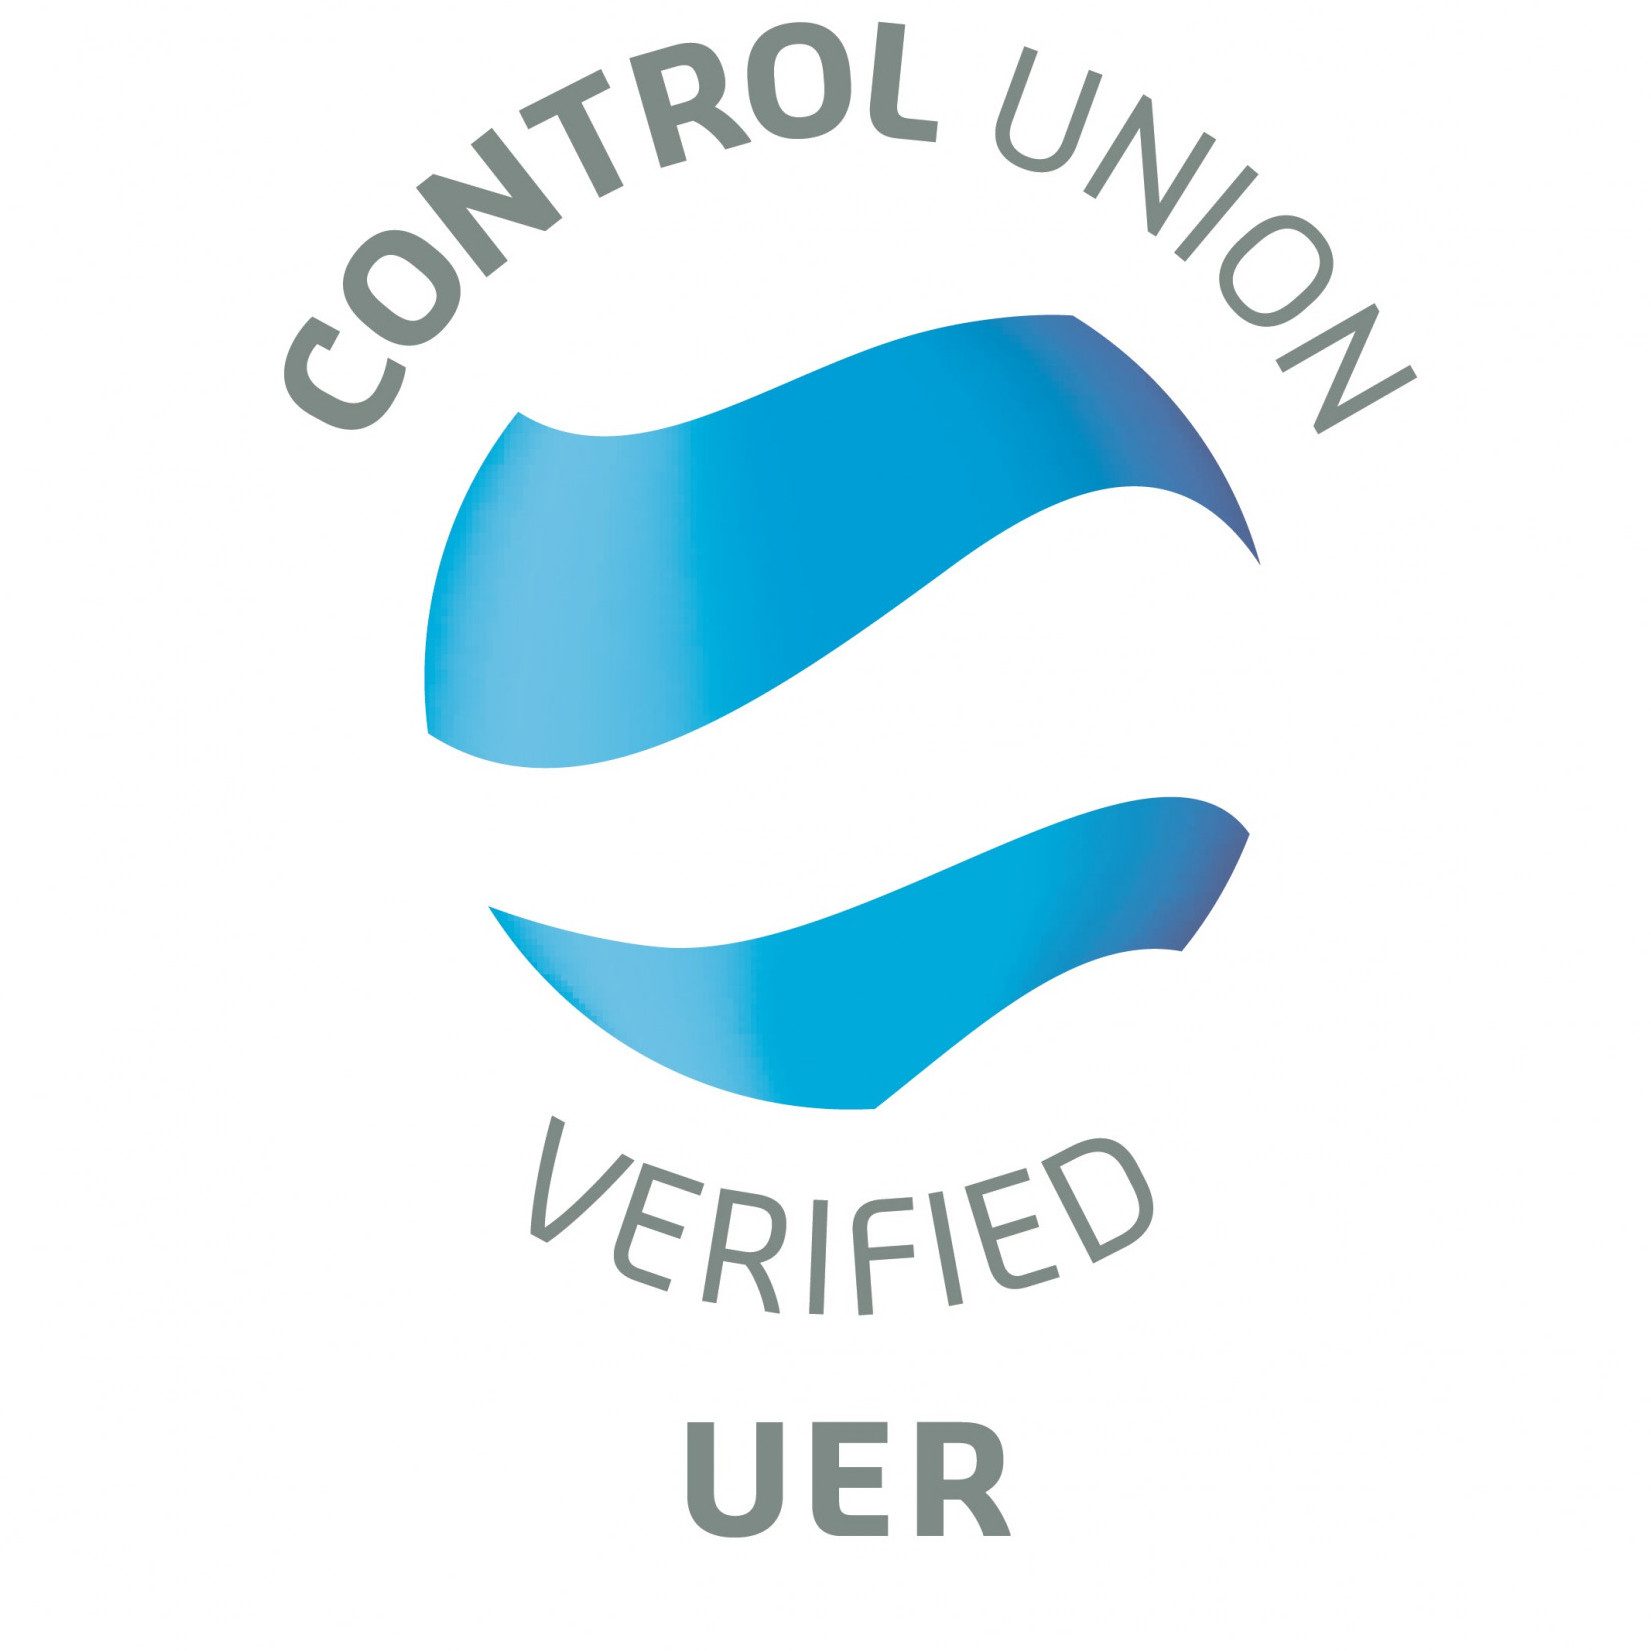 UER - Upstream Emission Reduction verification